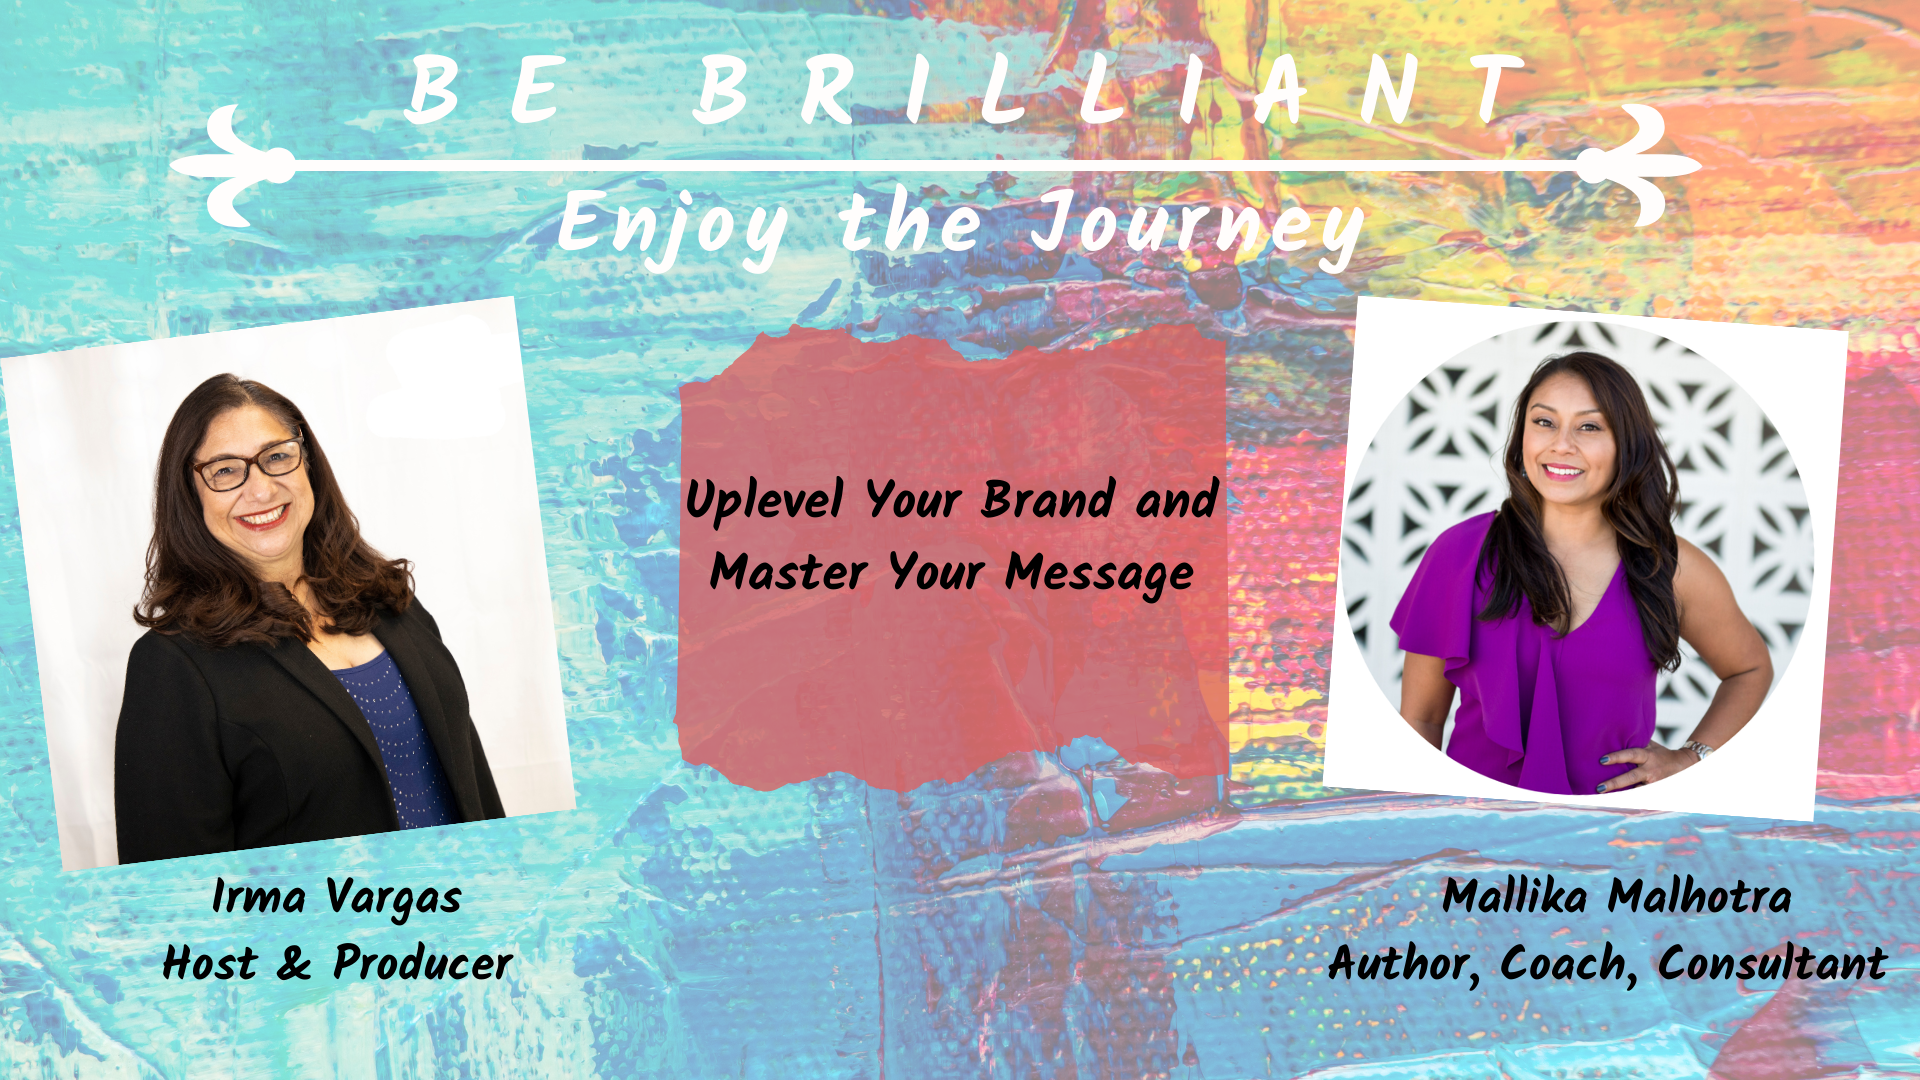 Uplevel Your Brand and Master Your Message